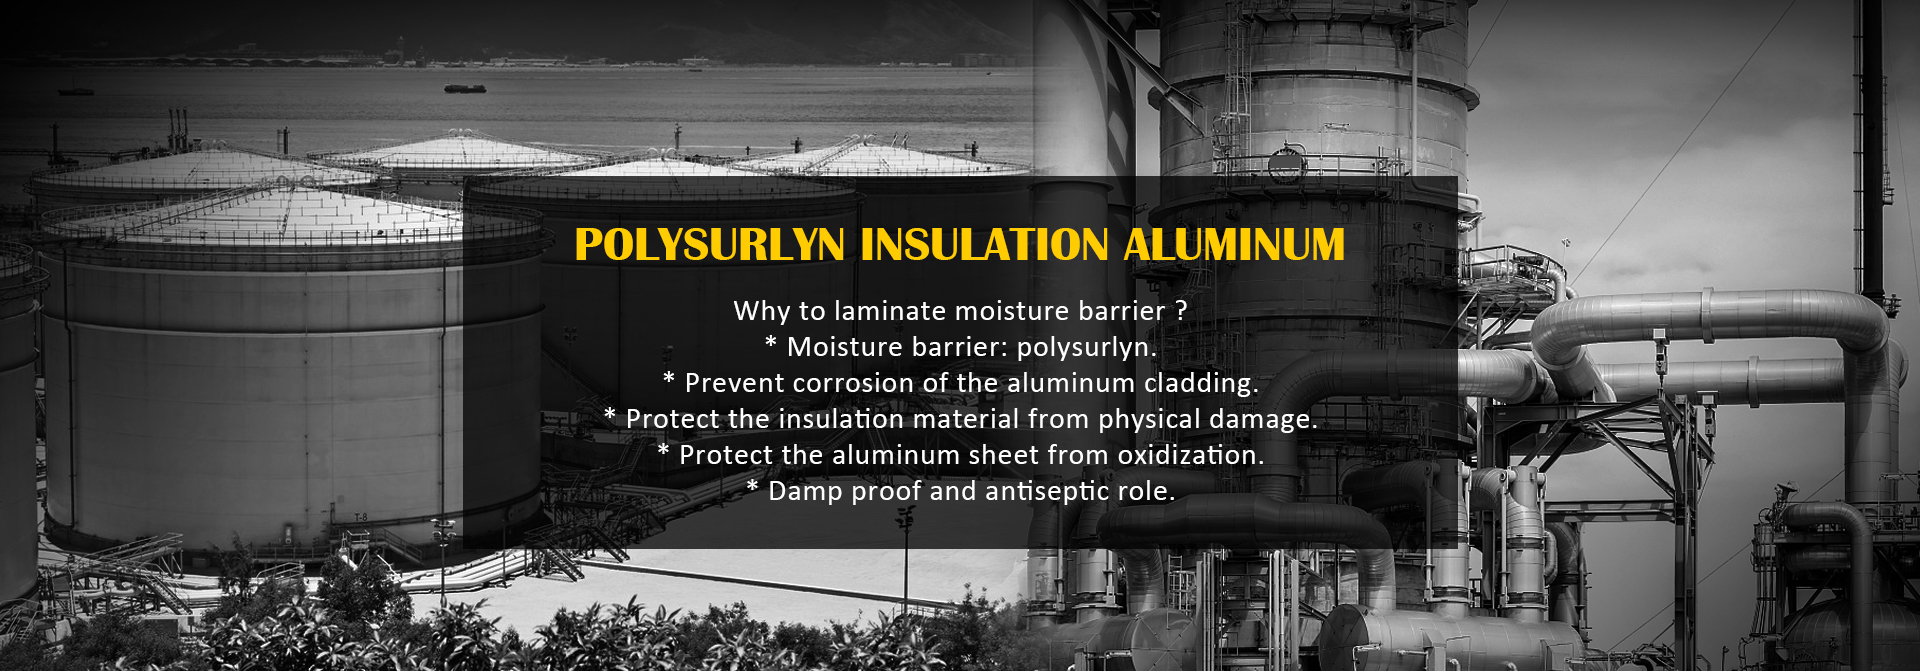 Polysurlyn Insulation Aluminum